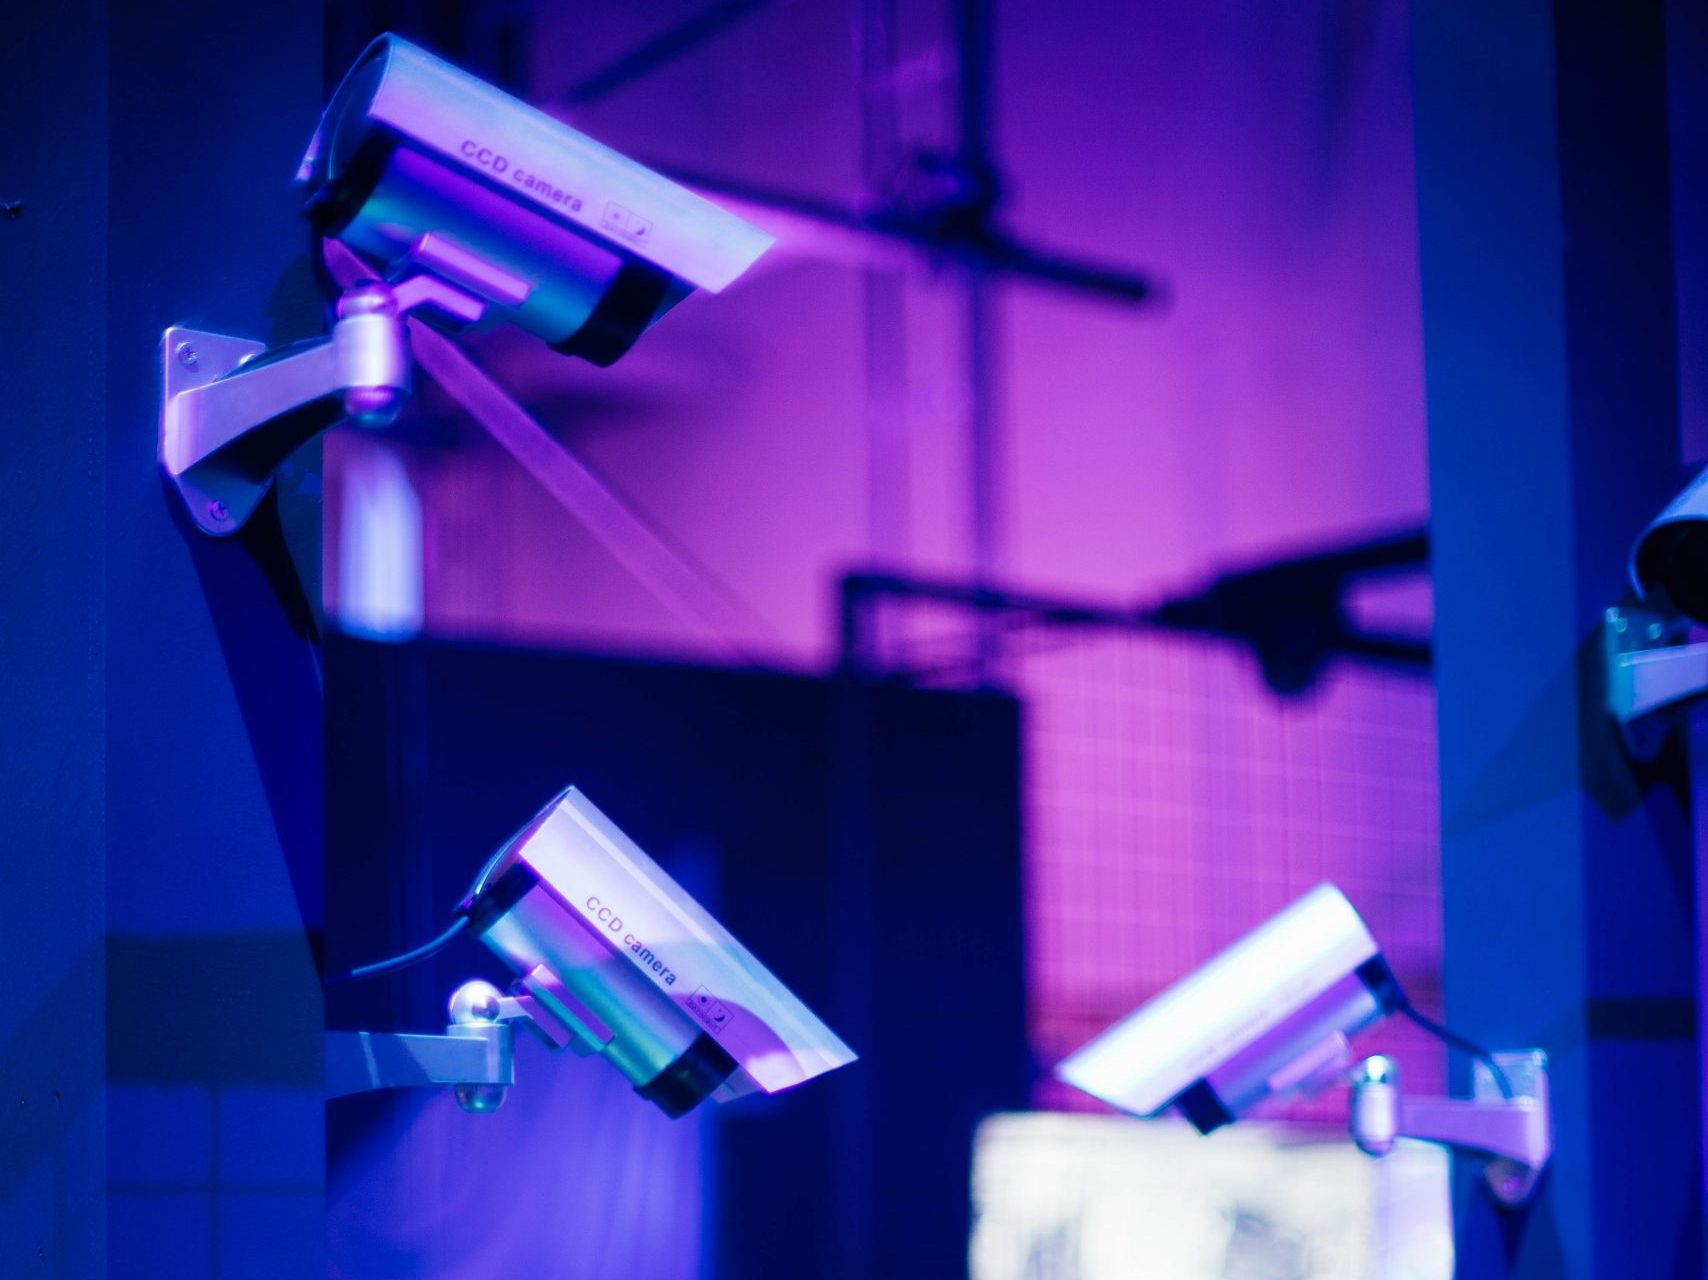 Stock image of surveillance cameras on a purple-blue background